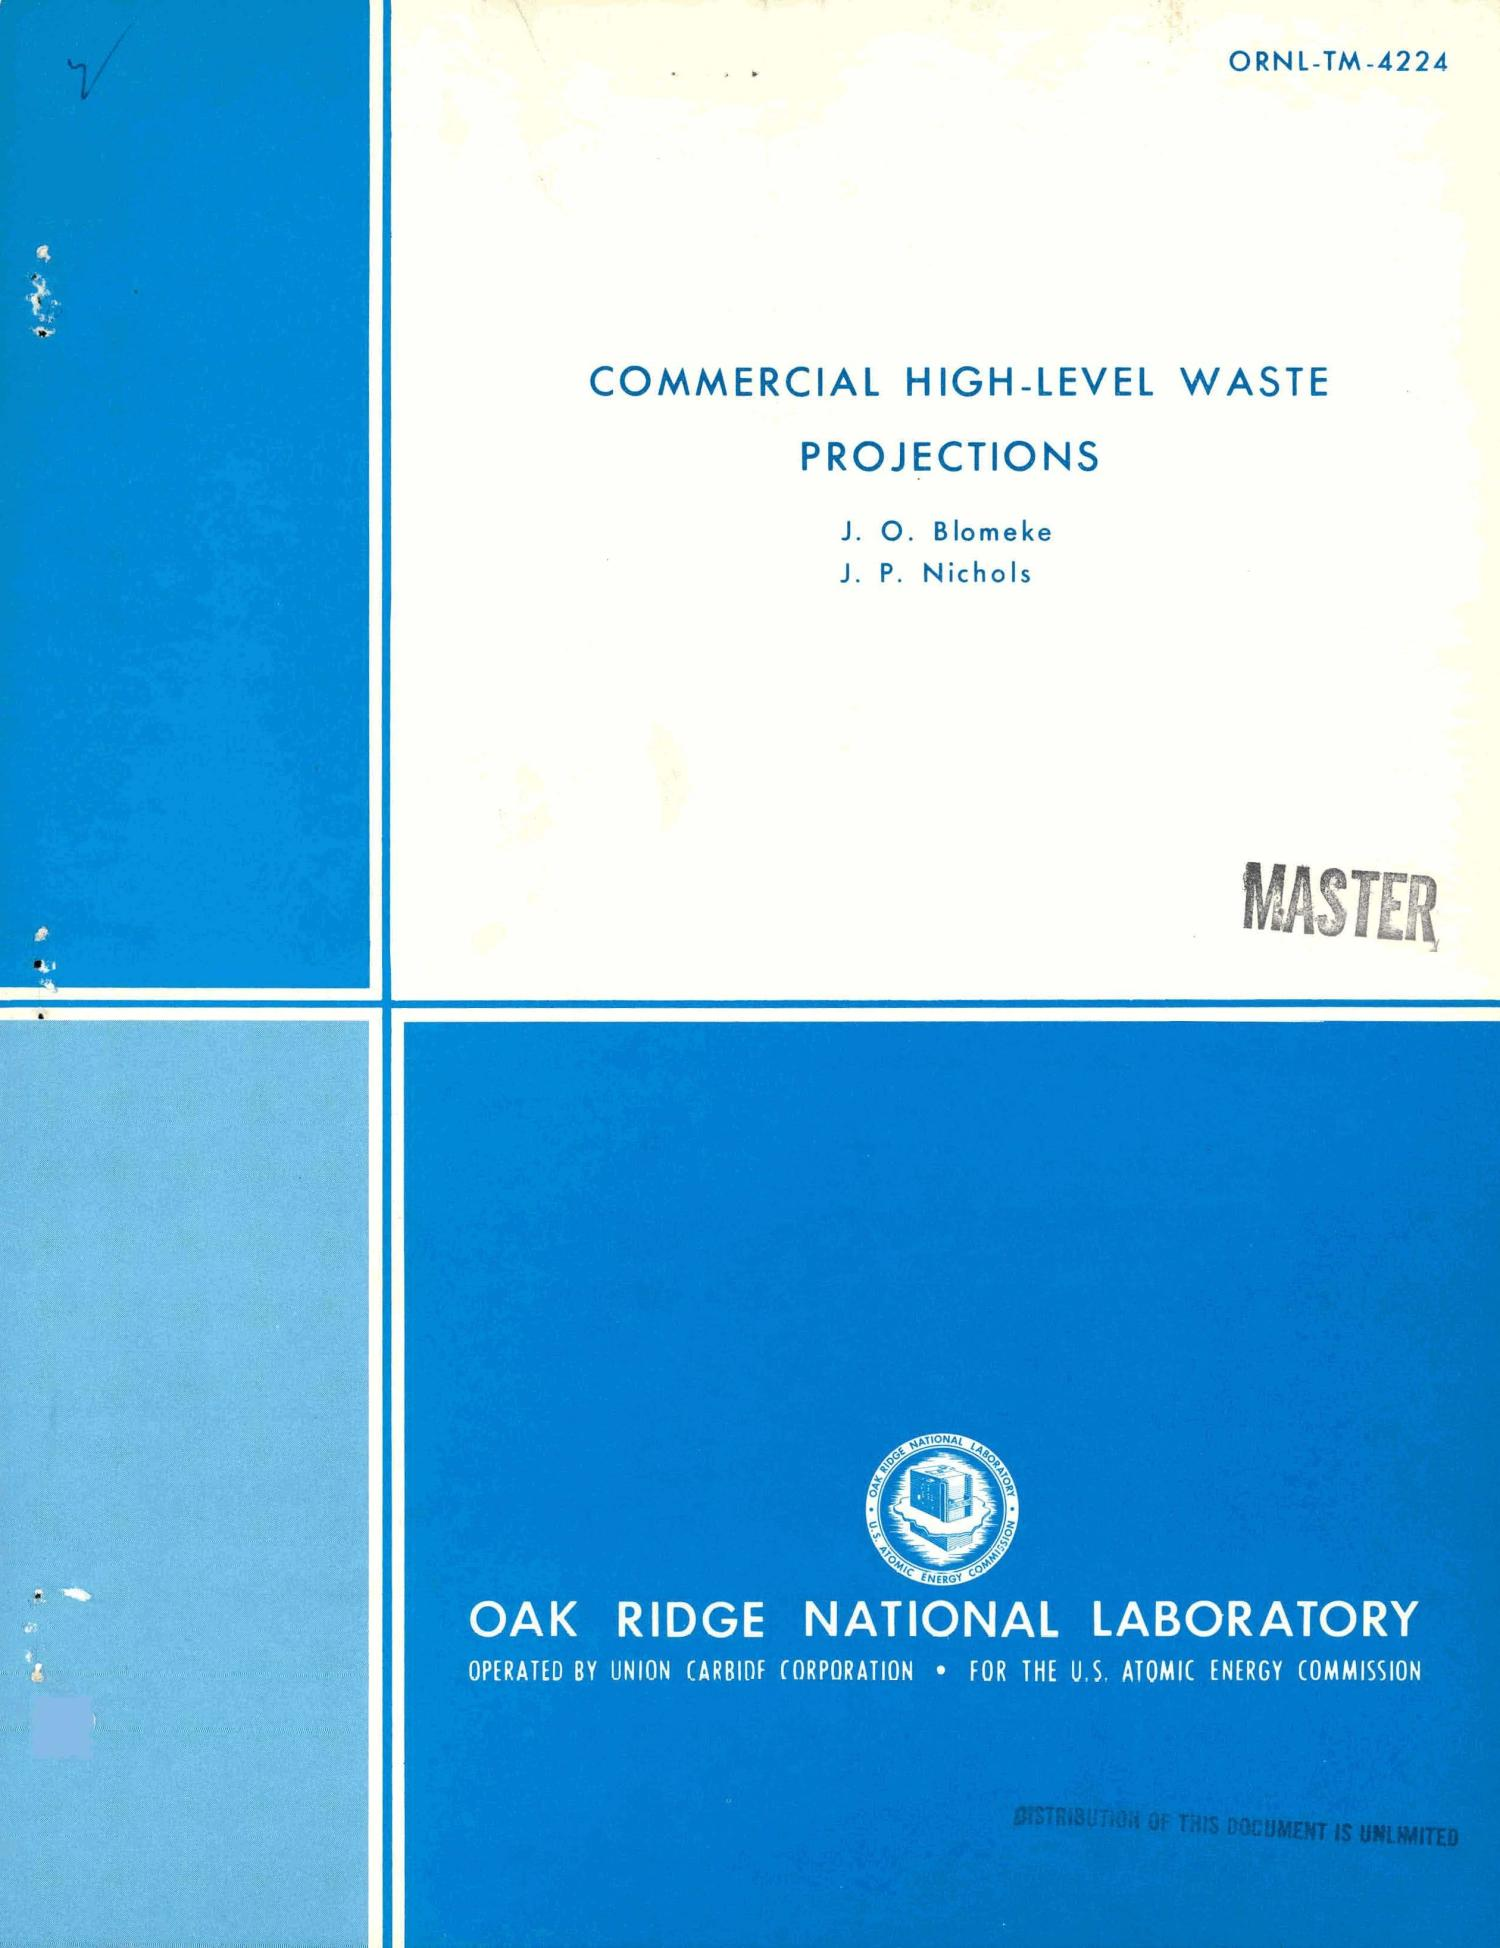 Commercial high-level waste projections                                                                                                      [Sequence #]: 1 of 25